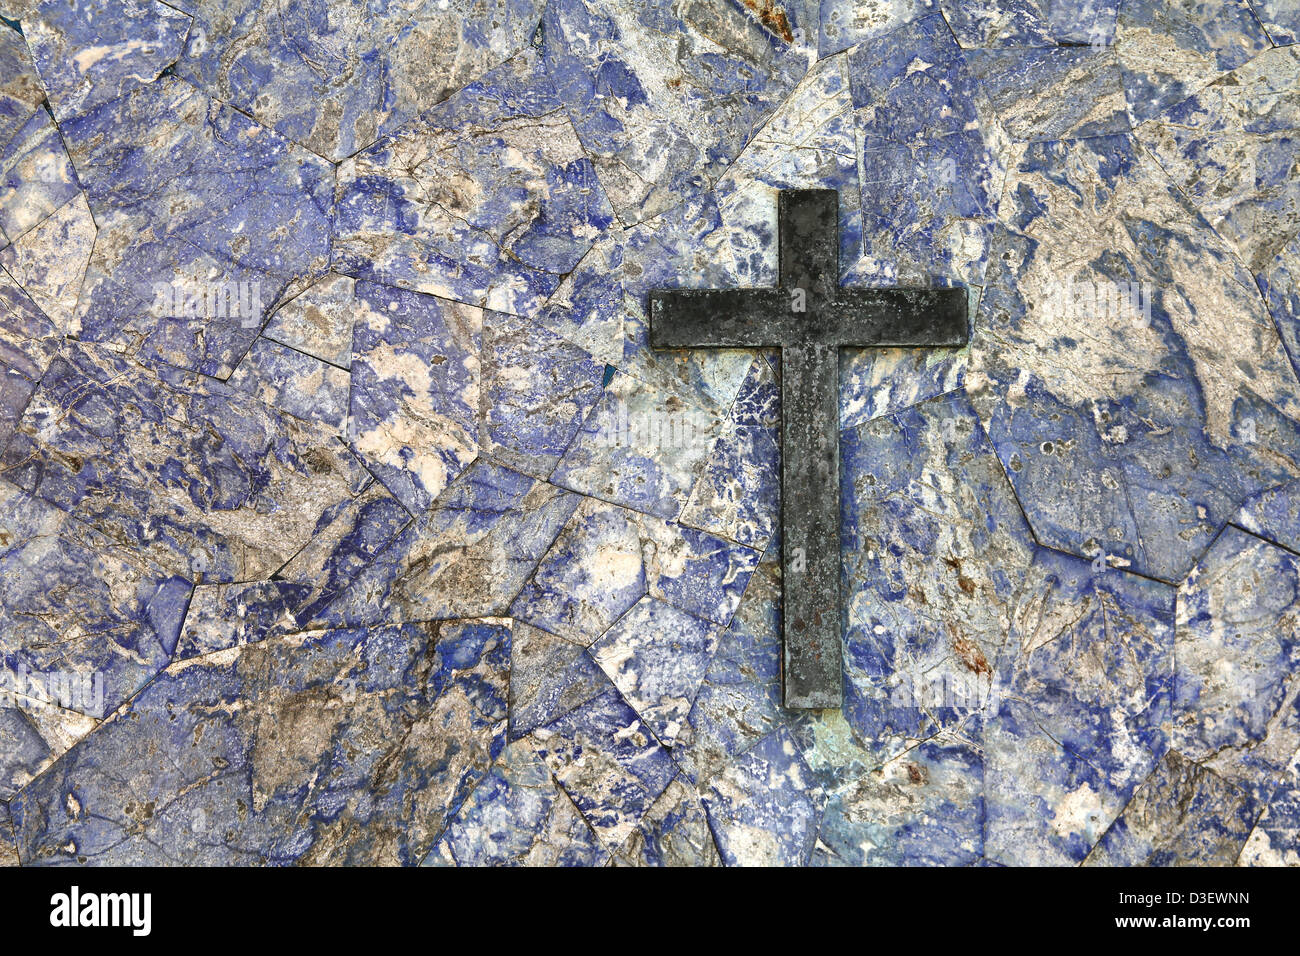 Gravestone texture - blue marble stone and a brass cross. Religious background. - Stock Image